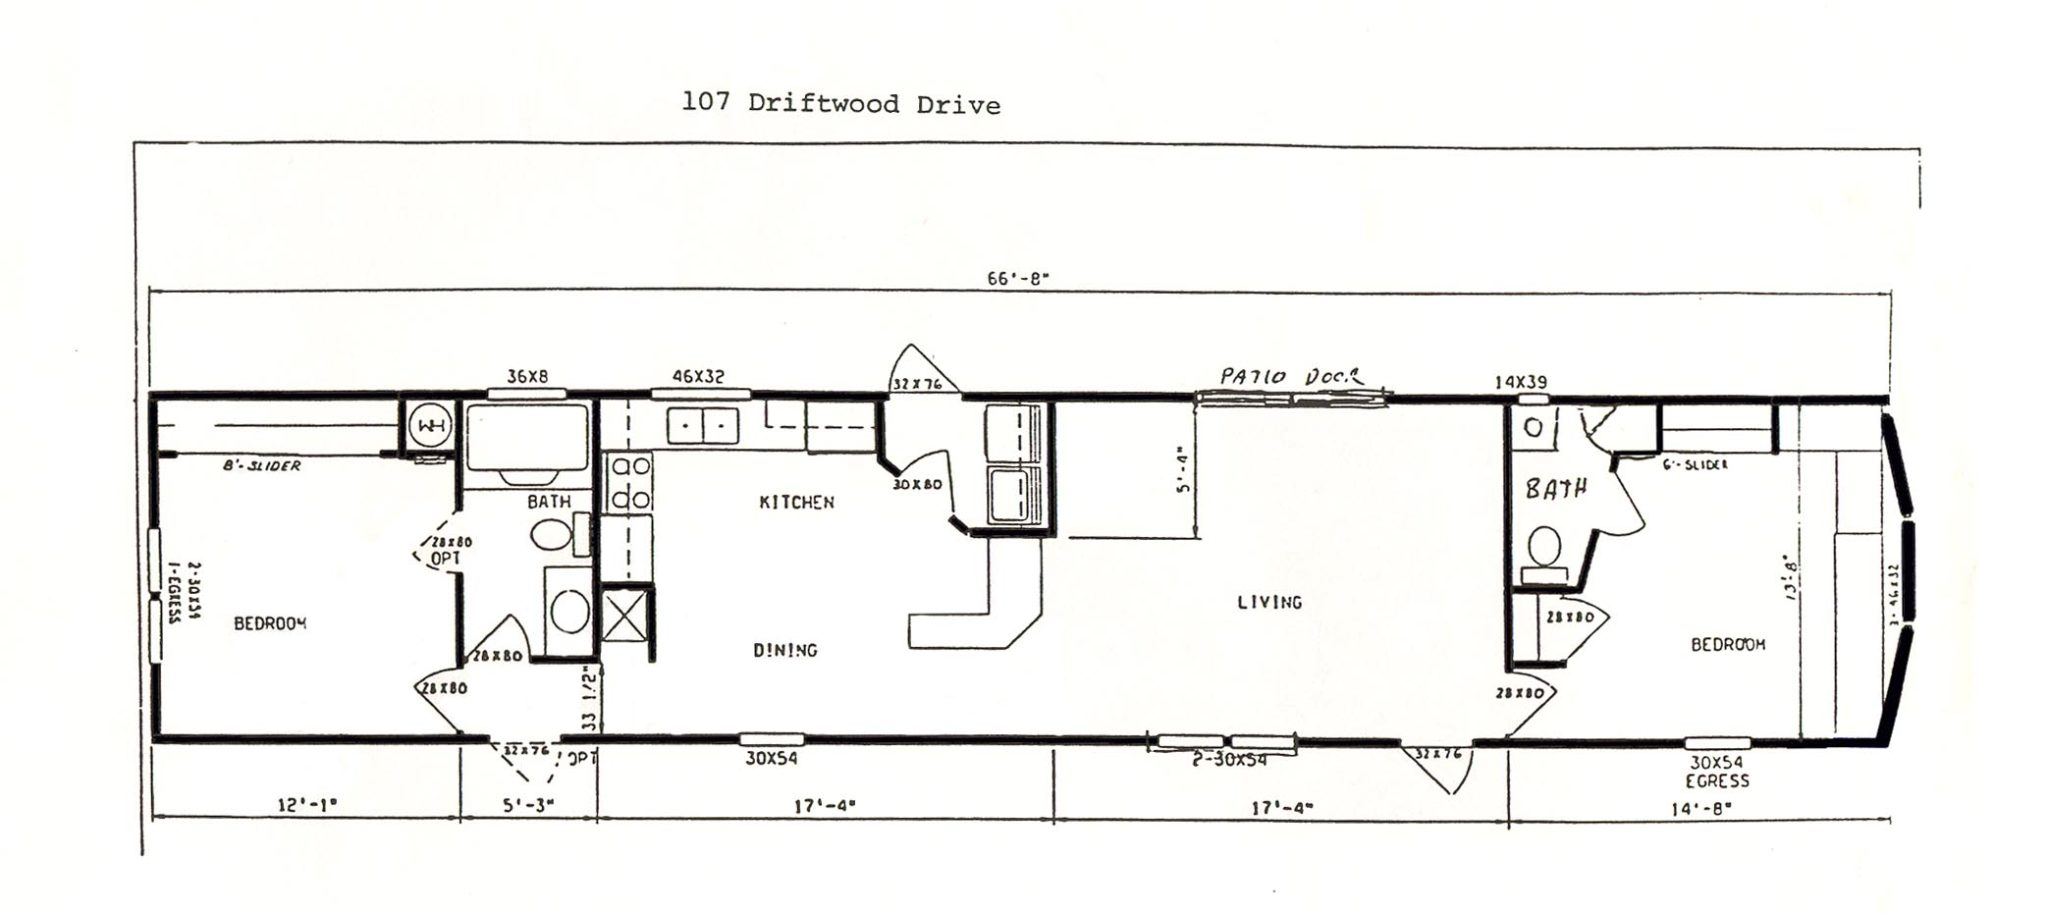 Floor plan of the 2-bedroom house for rent at 107 Driftwood Drive, State College PA.